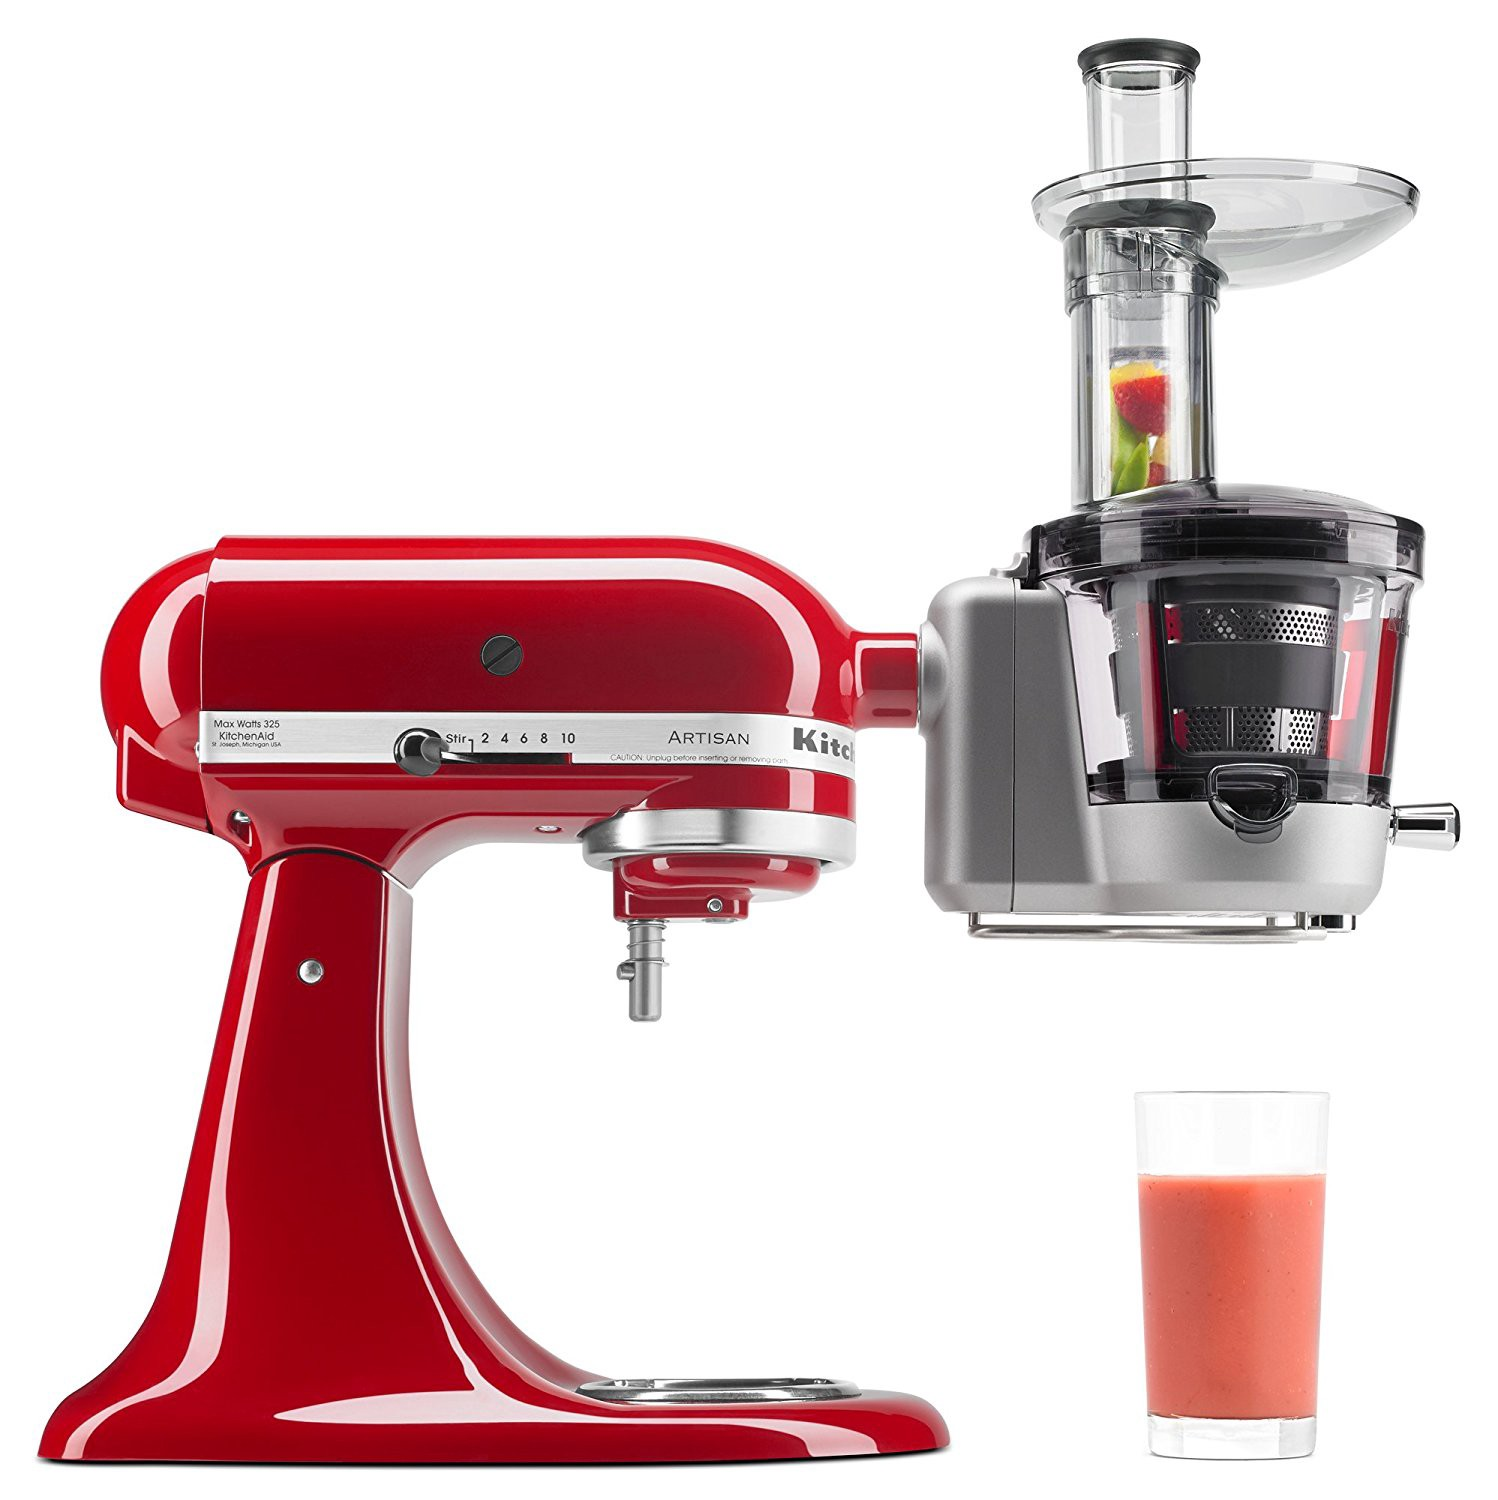 bd5cdba6b34 Recommendation  If you ve been considering getting your own juicer but  uneasy about the big cost